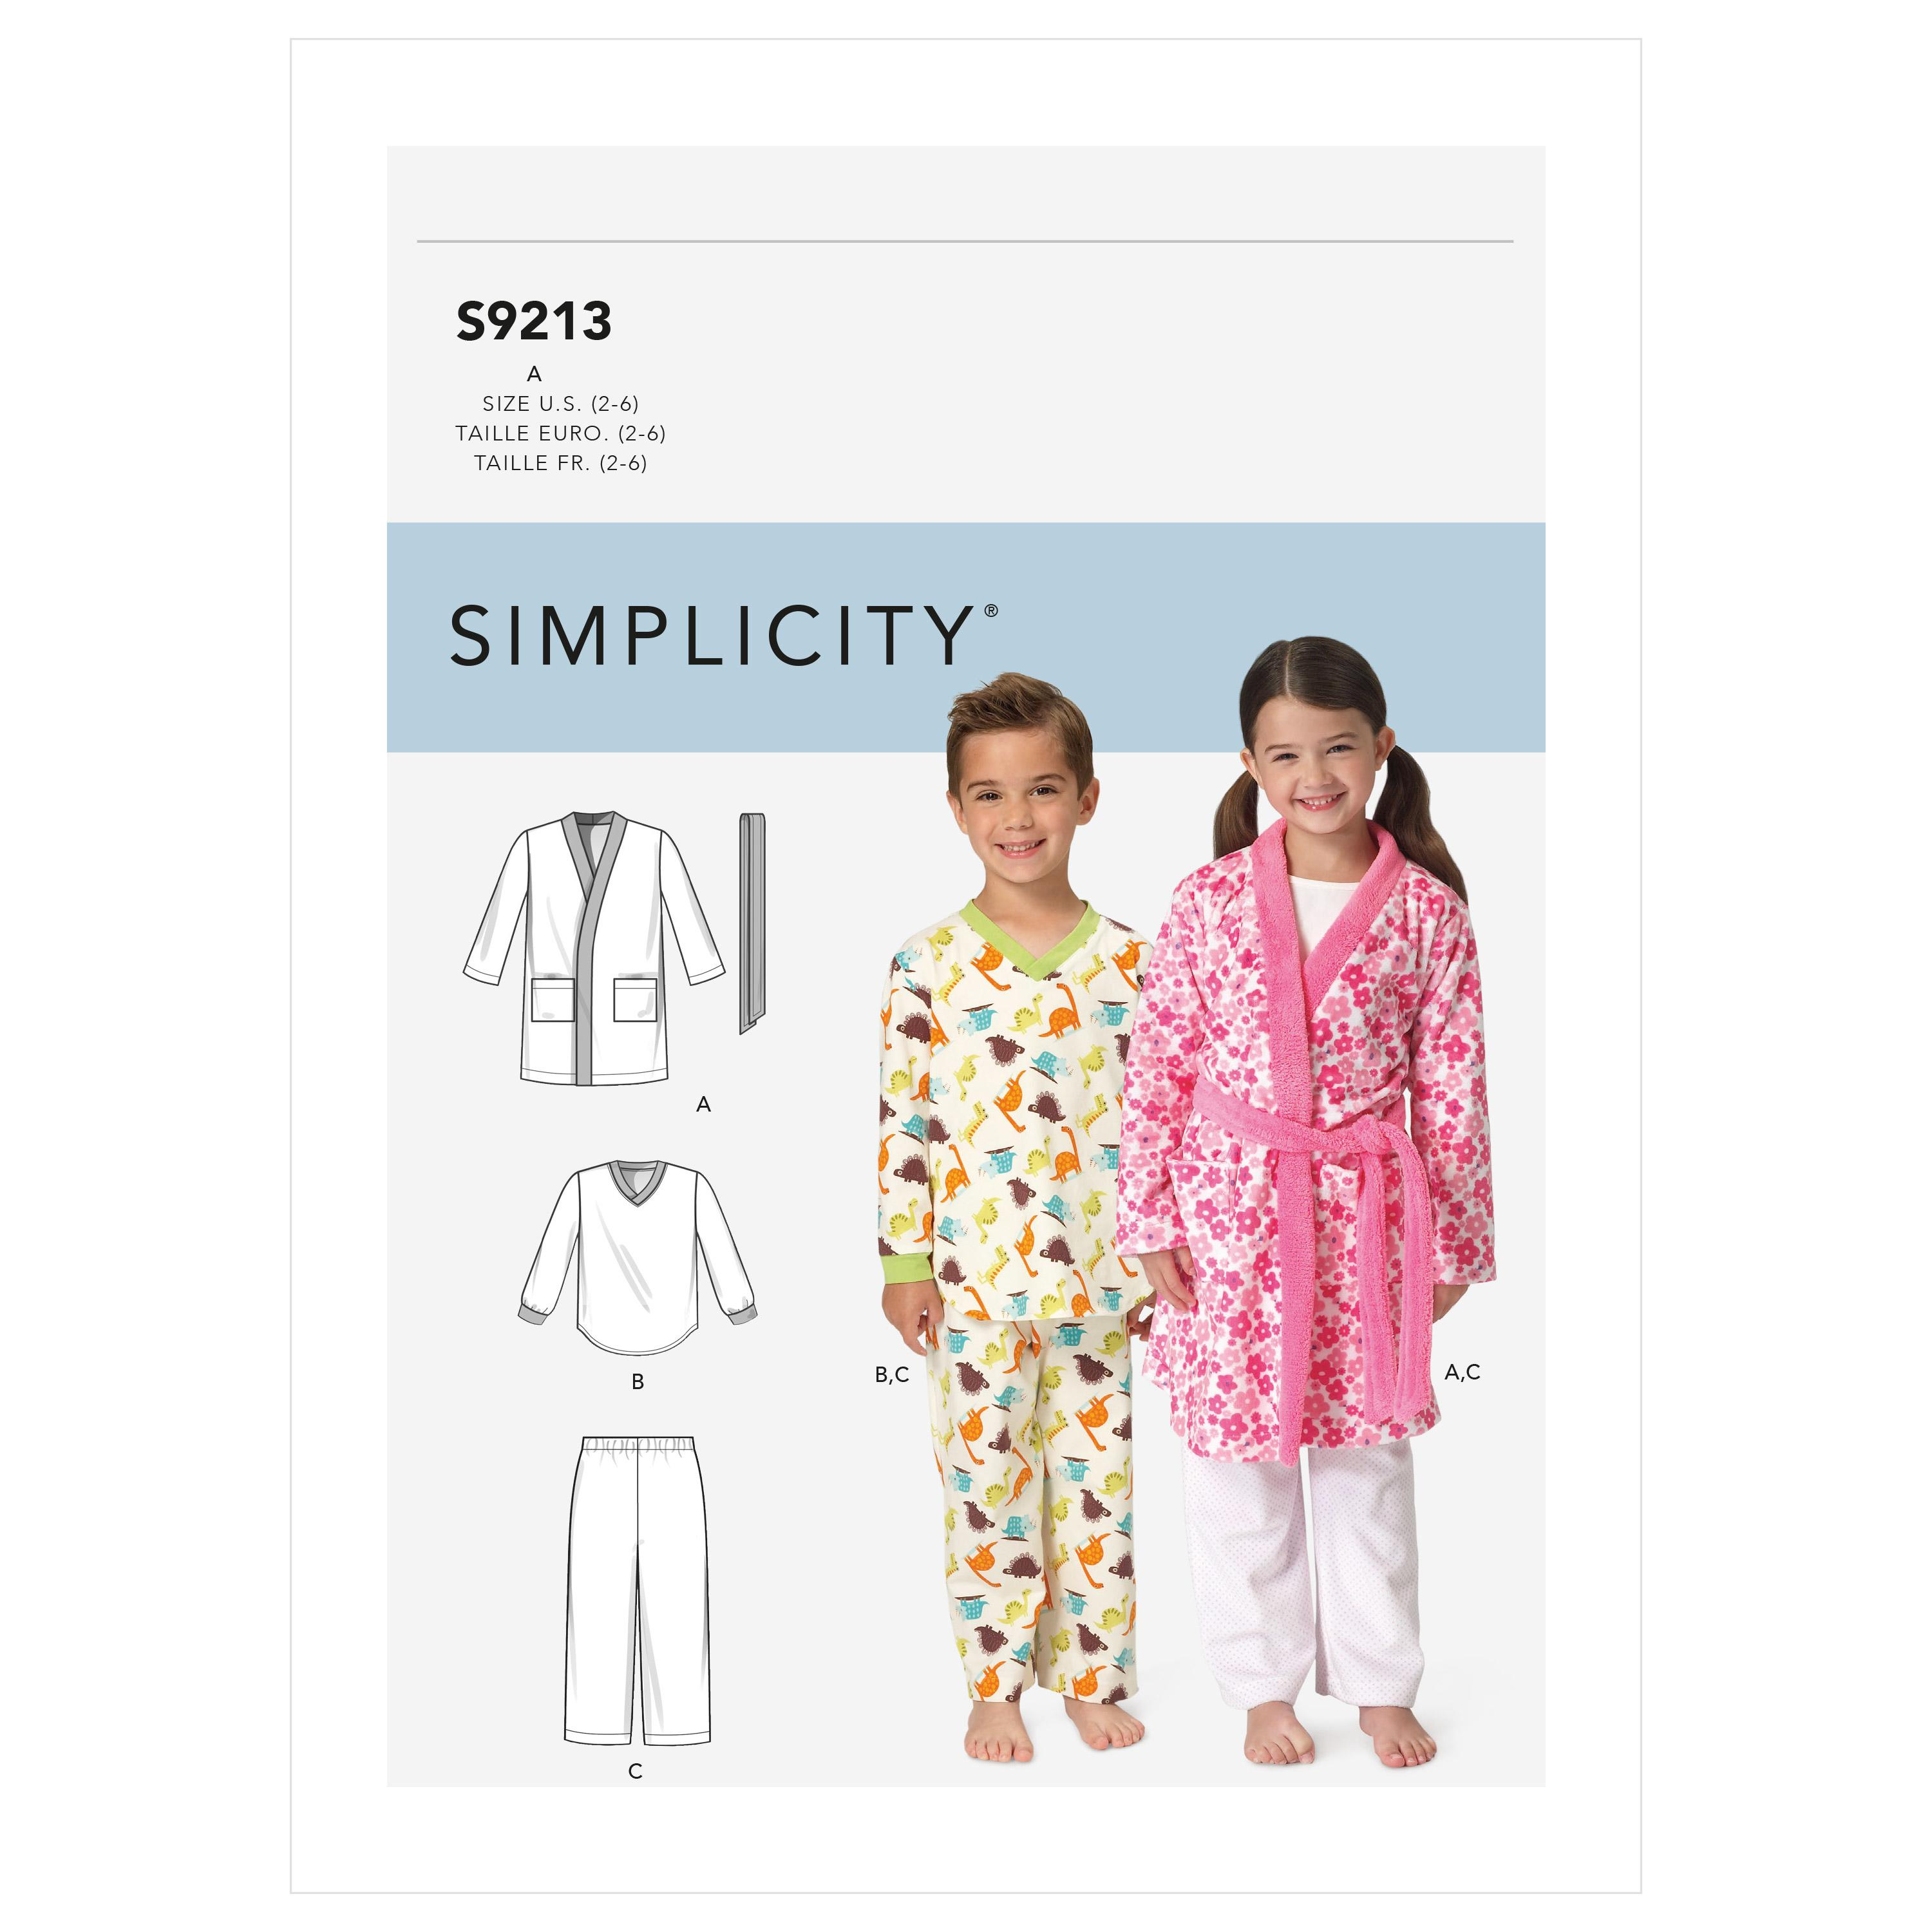 Simplicity Sewing Pattern S9213 Children's Cozywear